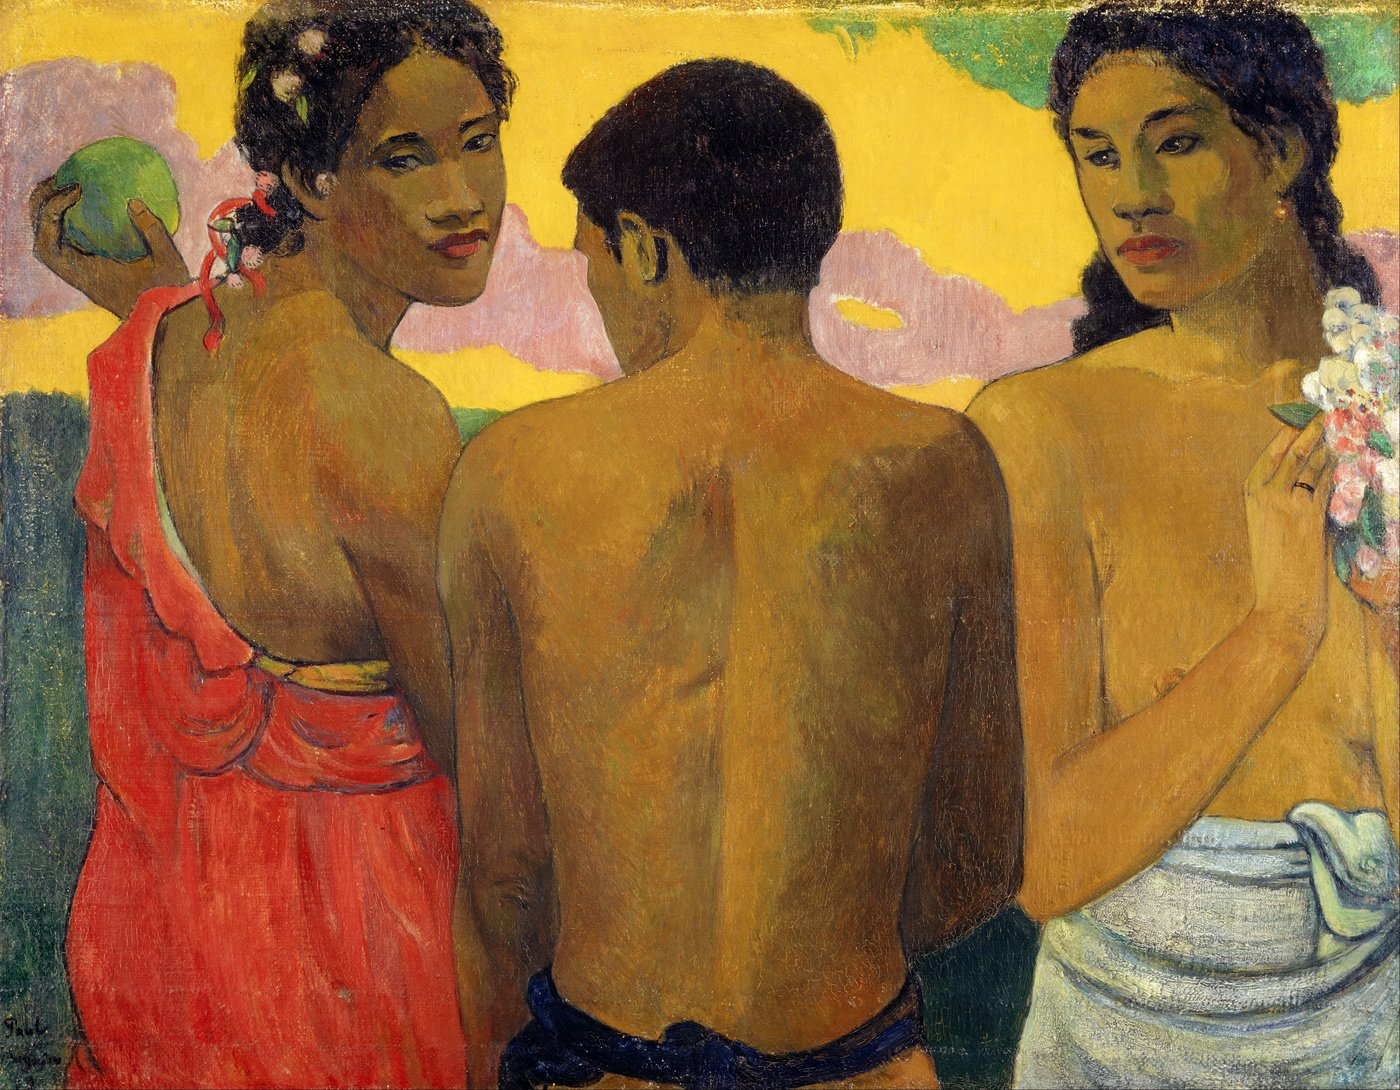 Paul Gauguin background